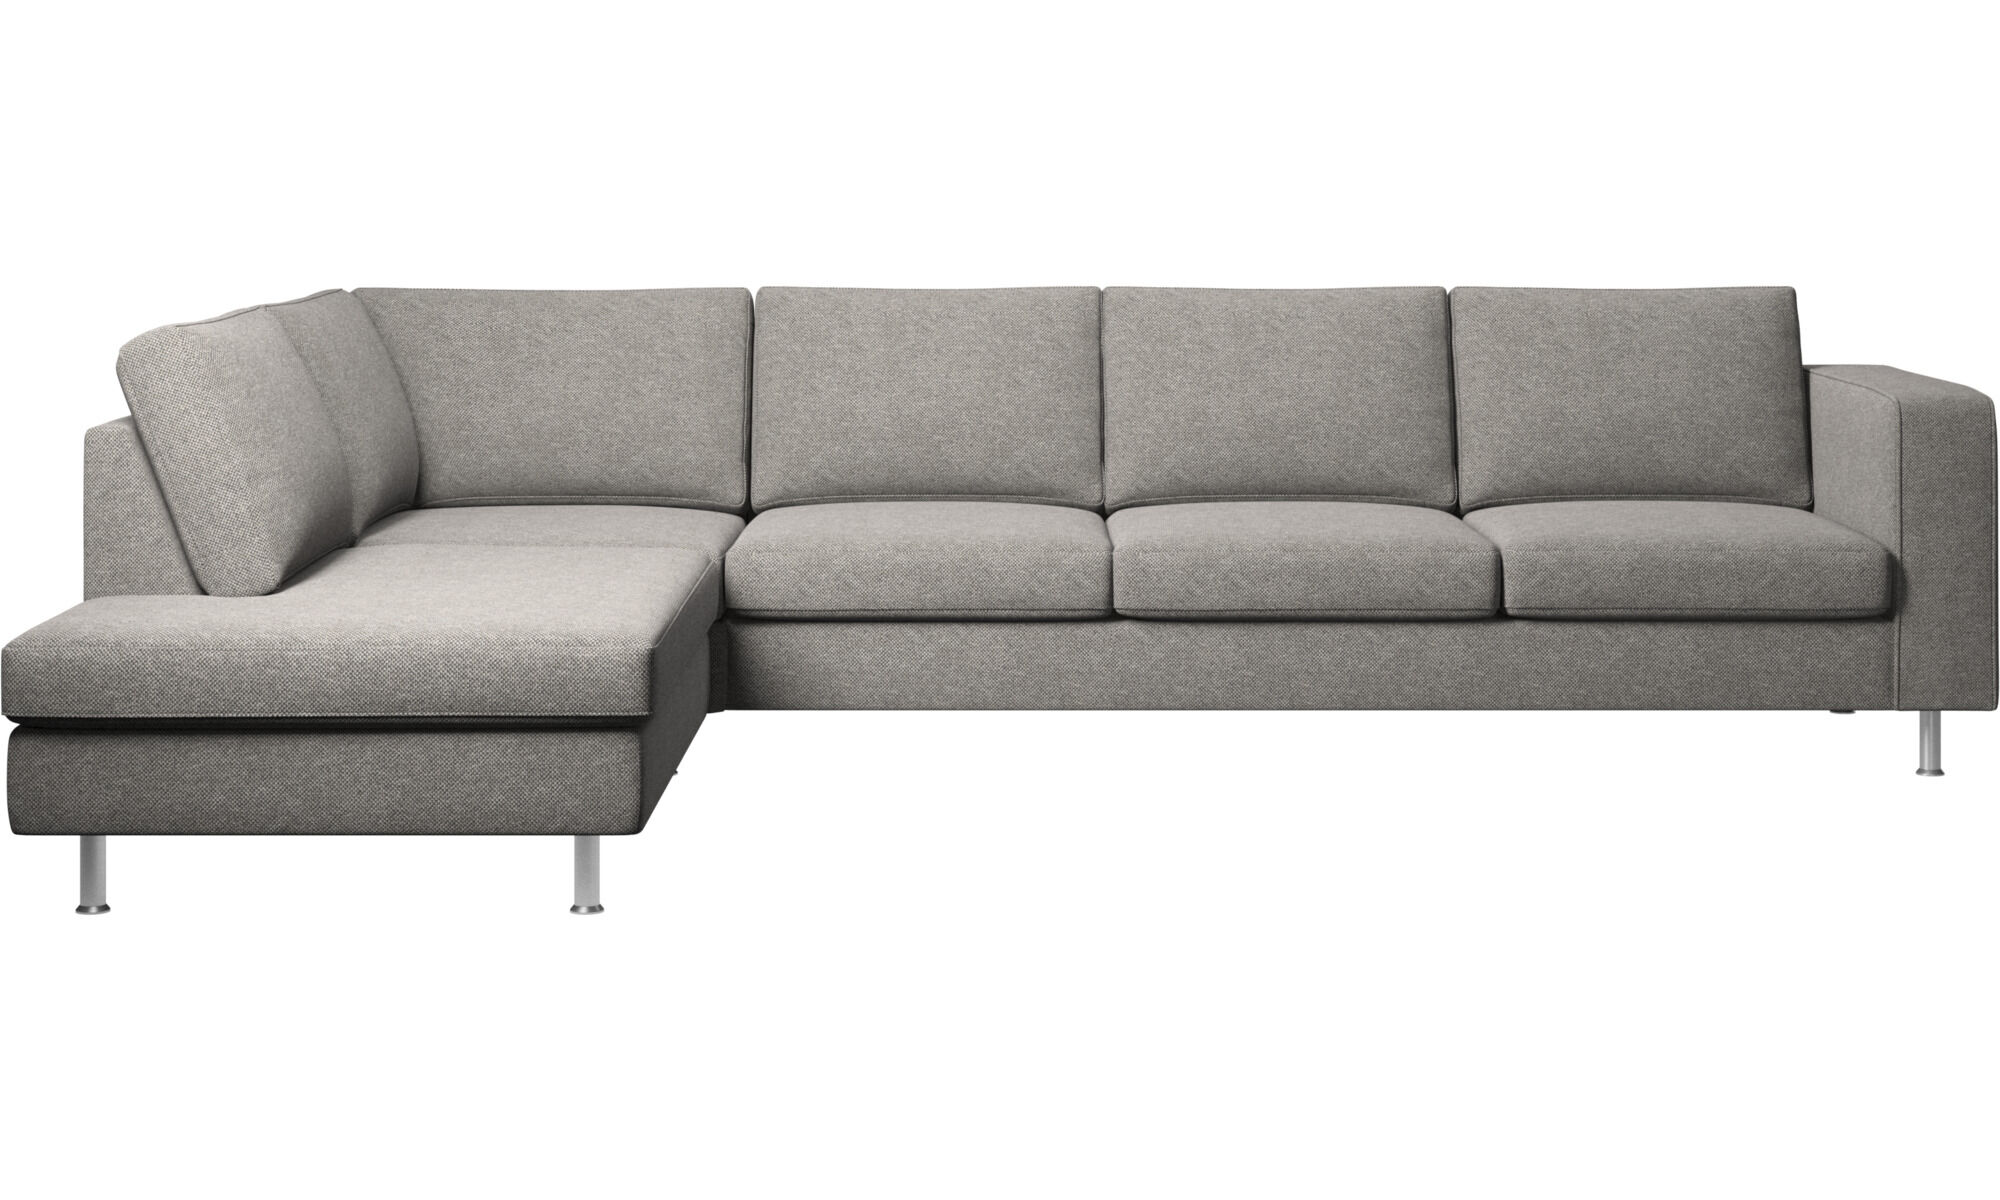 Bon Sofas With Open End   Indivi 2 Corner Sofa With Lounging Unit   Gray    Fabric ...